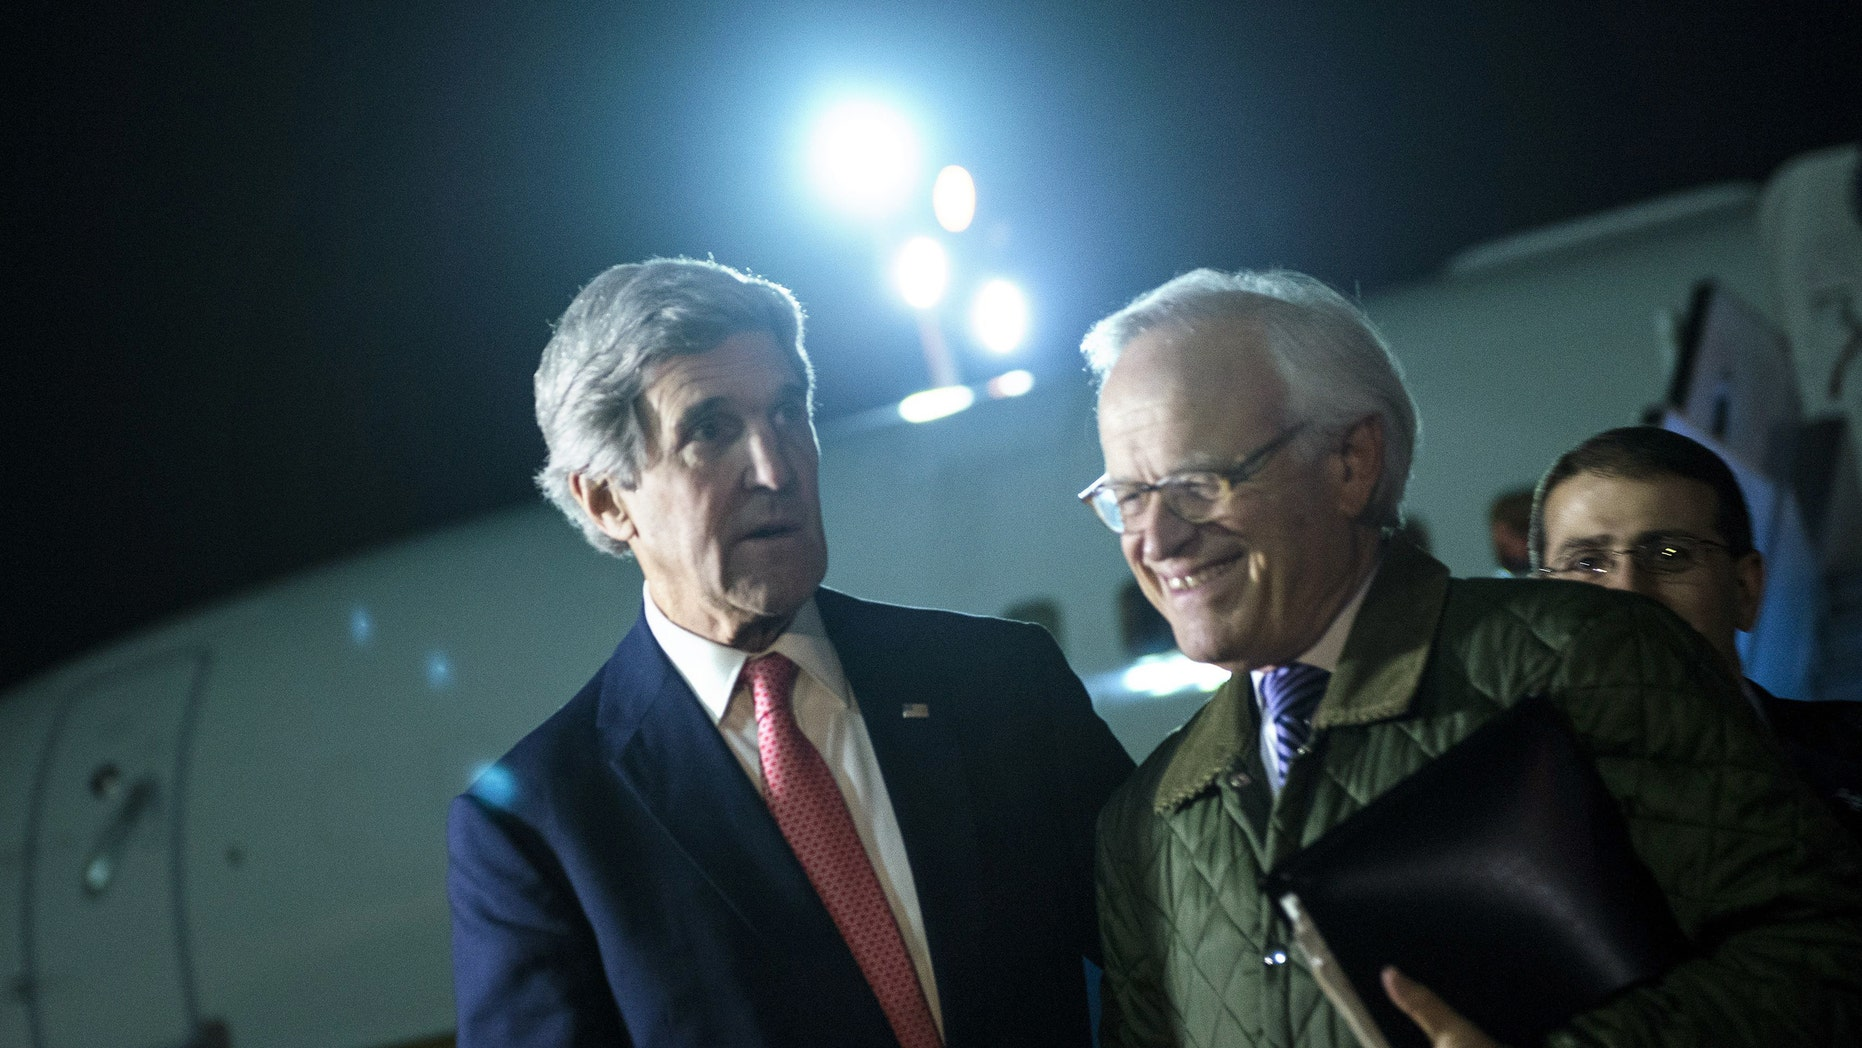 US Secretary of State John Kerry, left, walks with US Special Envoy for Israeli-Palestinian Negotiations Martin Indyk, right, while returning from a trip to Jordan and Saudi Arabia, at Ben Gurion International Airport, Tel Aviv Israel, on Sunday Jan. 5, 2014.  Kerry continues his regional peace-making efforts Sunday. (AP Photo / Brendan Smialowski, Pool)